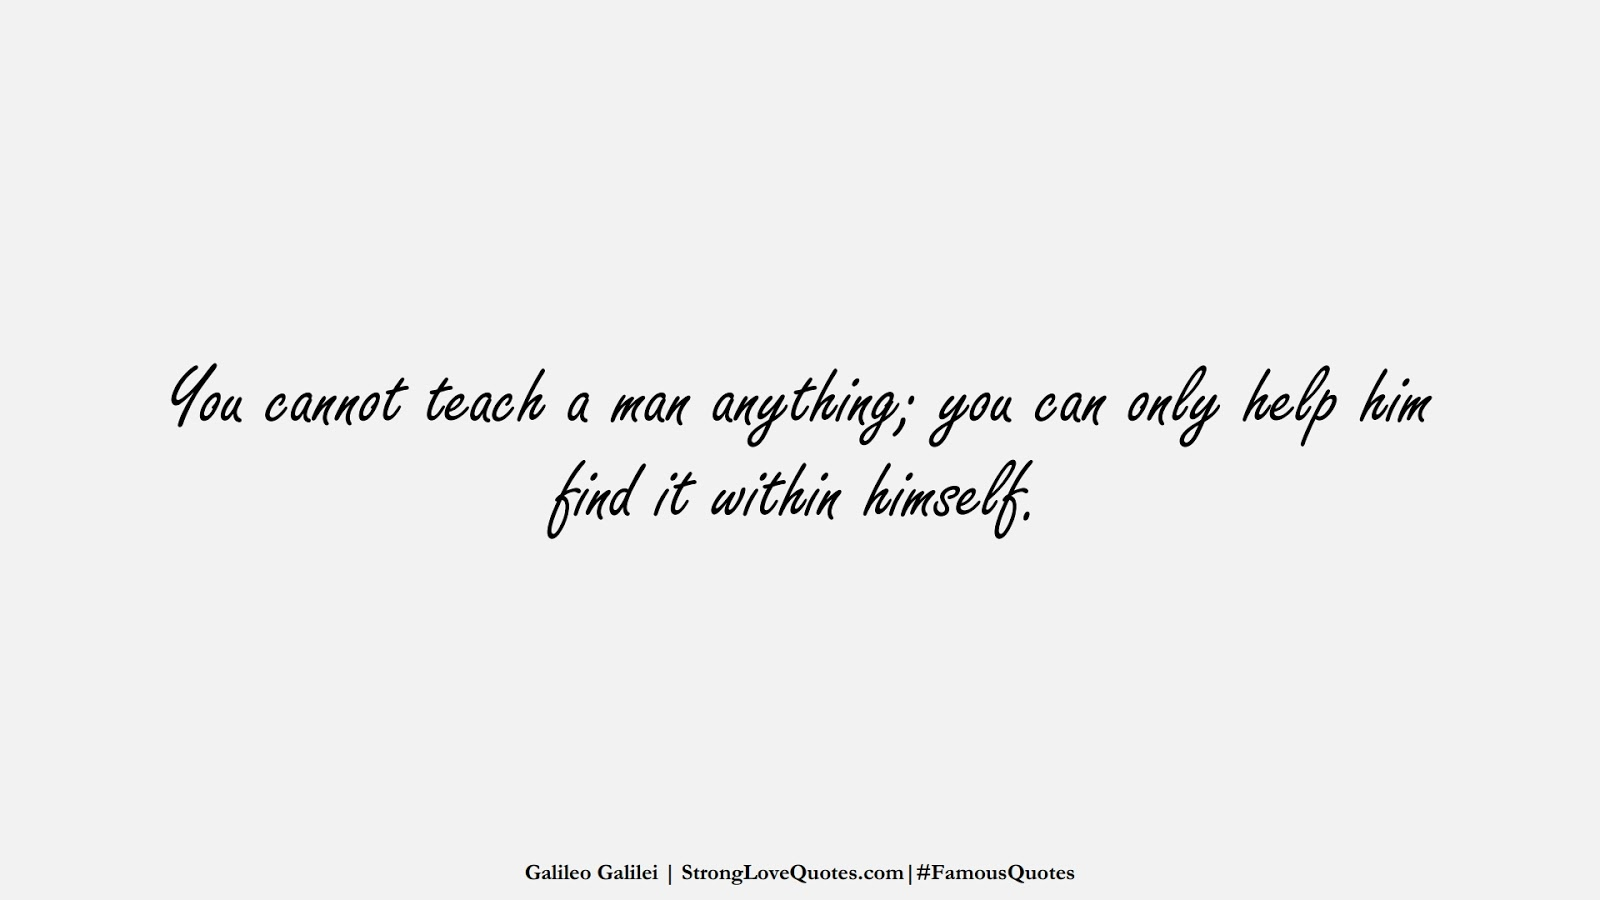 You cannot teach a man anything; you can only help him find it within himself. (Galileo Galilei);  #FamousQuotes